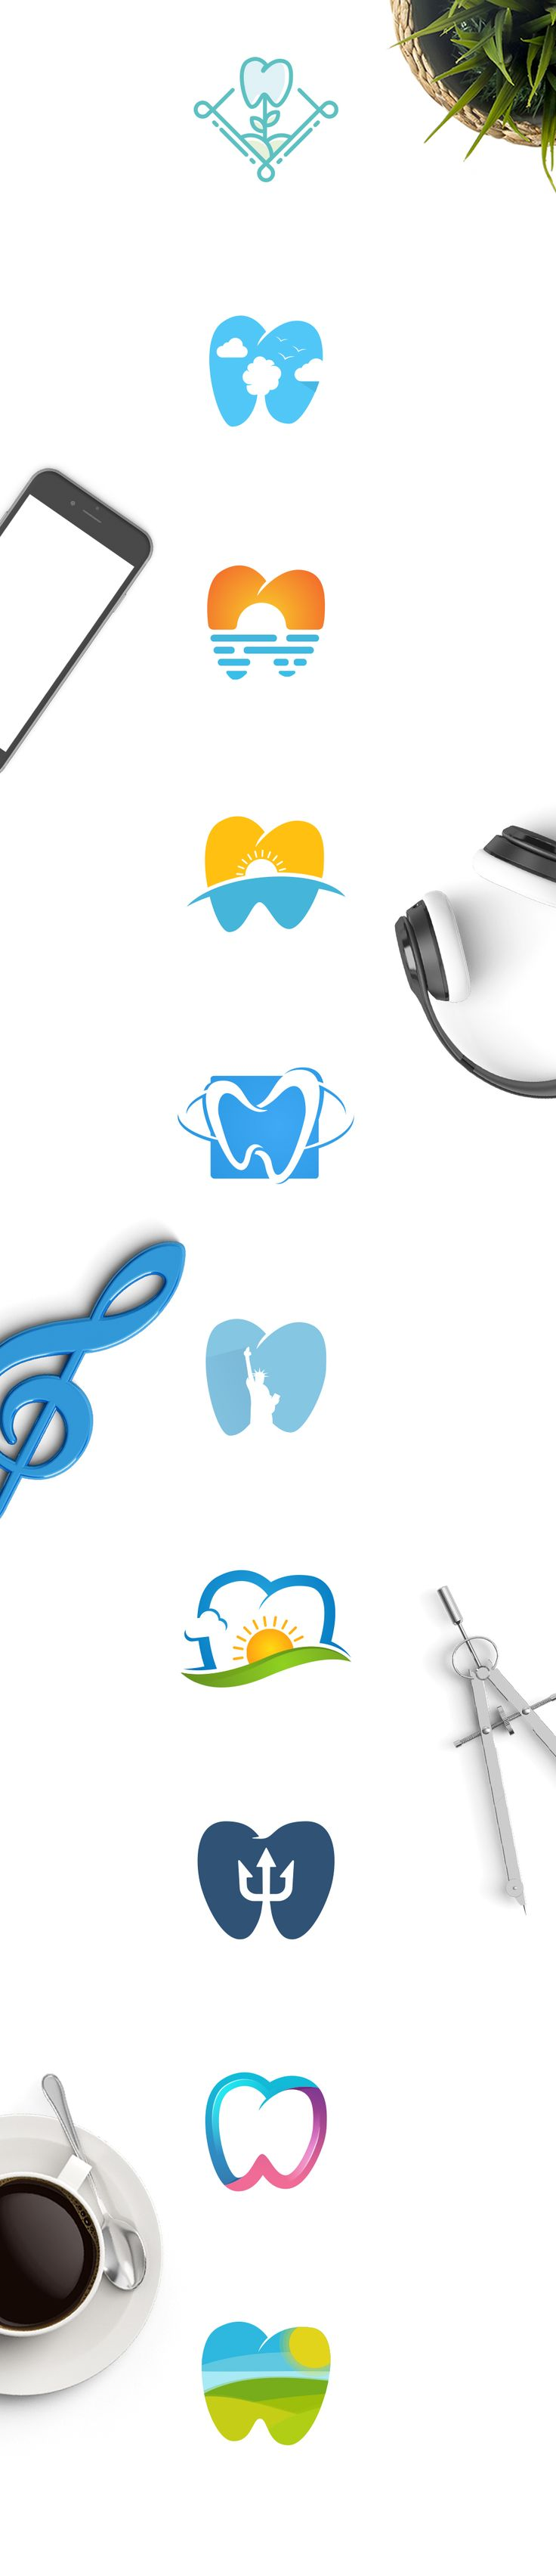 You can own one of these brilliant light bulb logo designs right now. Only on creative market! Hurry up before they're sold! #logo #concept #vector #symbol #icon #company #business #design #creative   #care #clean #tooth #clinic #creative #dentist #dentisery #doctor #gradient #health #healthy #hygiene #implant #medical #medicine #mouth #oral #shape #protection #smile #wave #white #blue